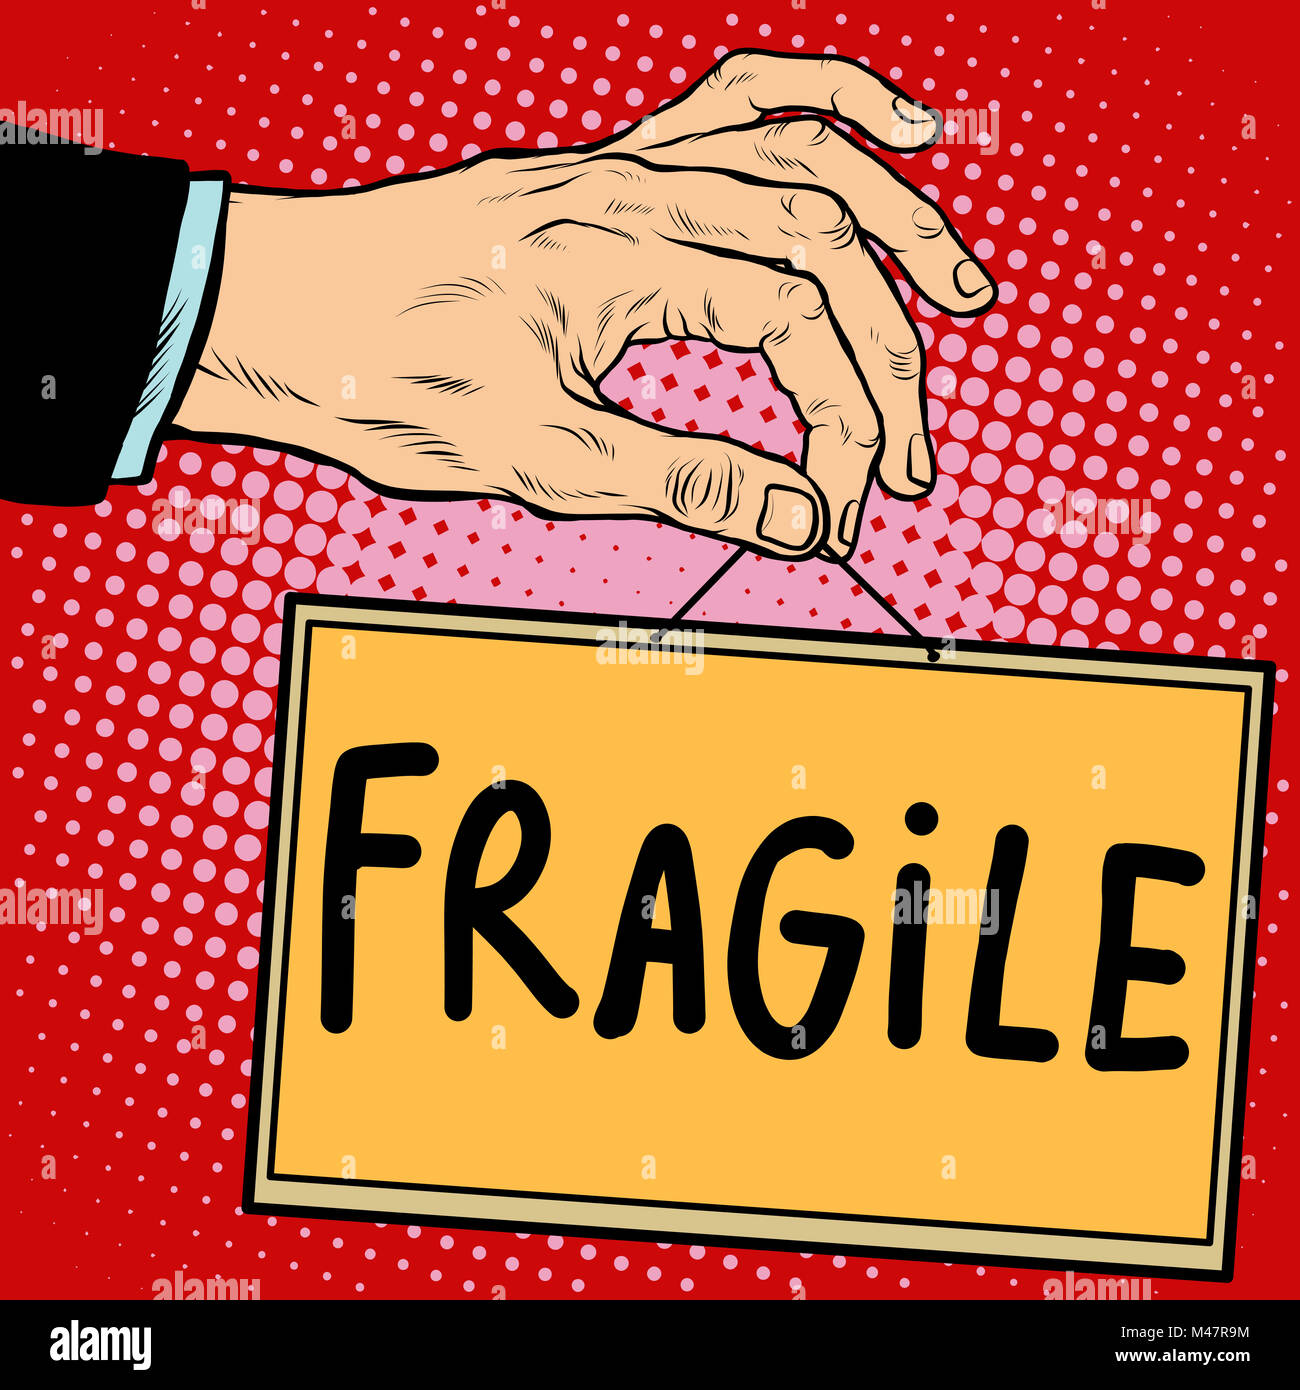 Hand sign fragile - Stock Image